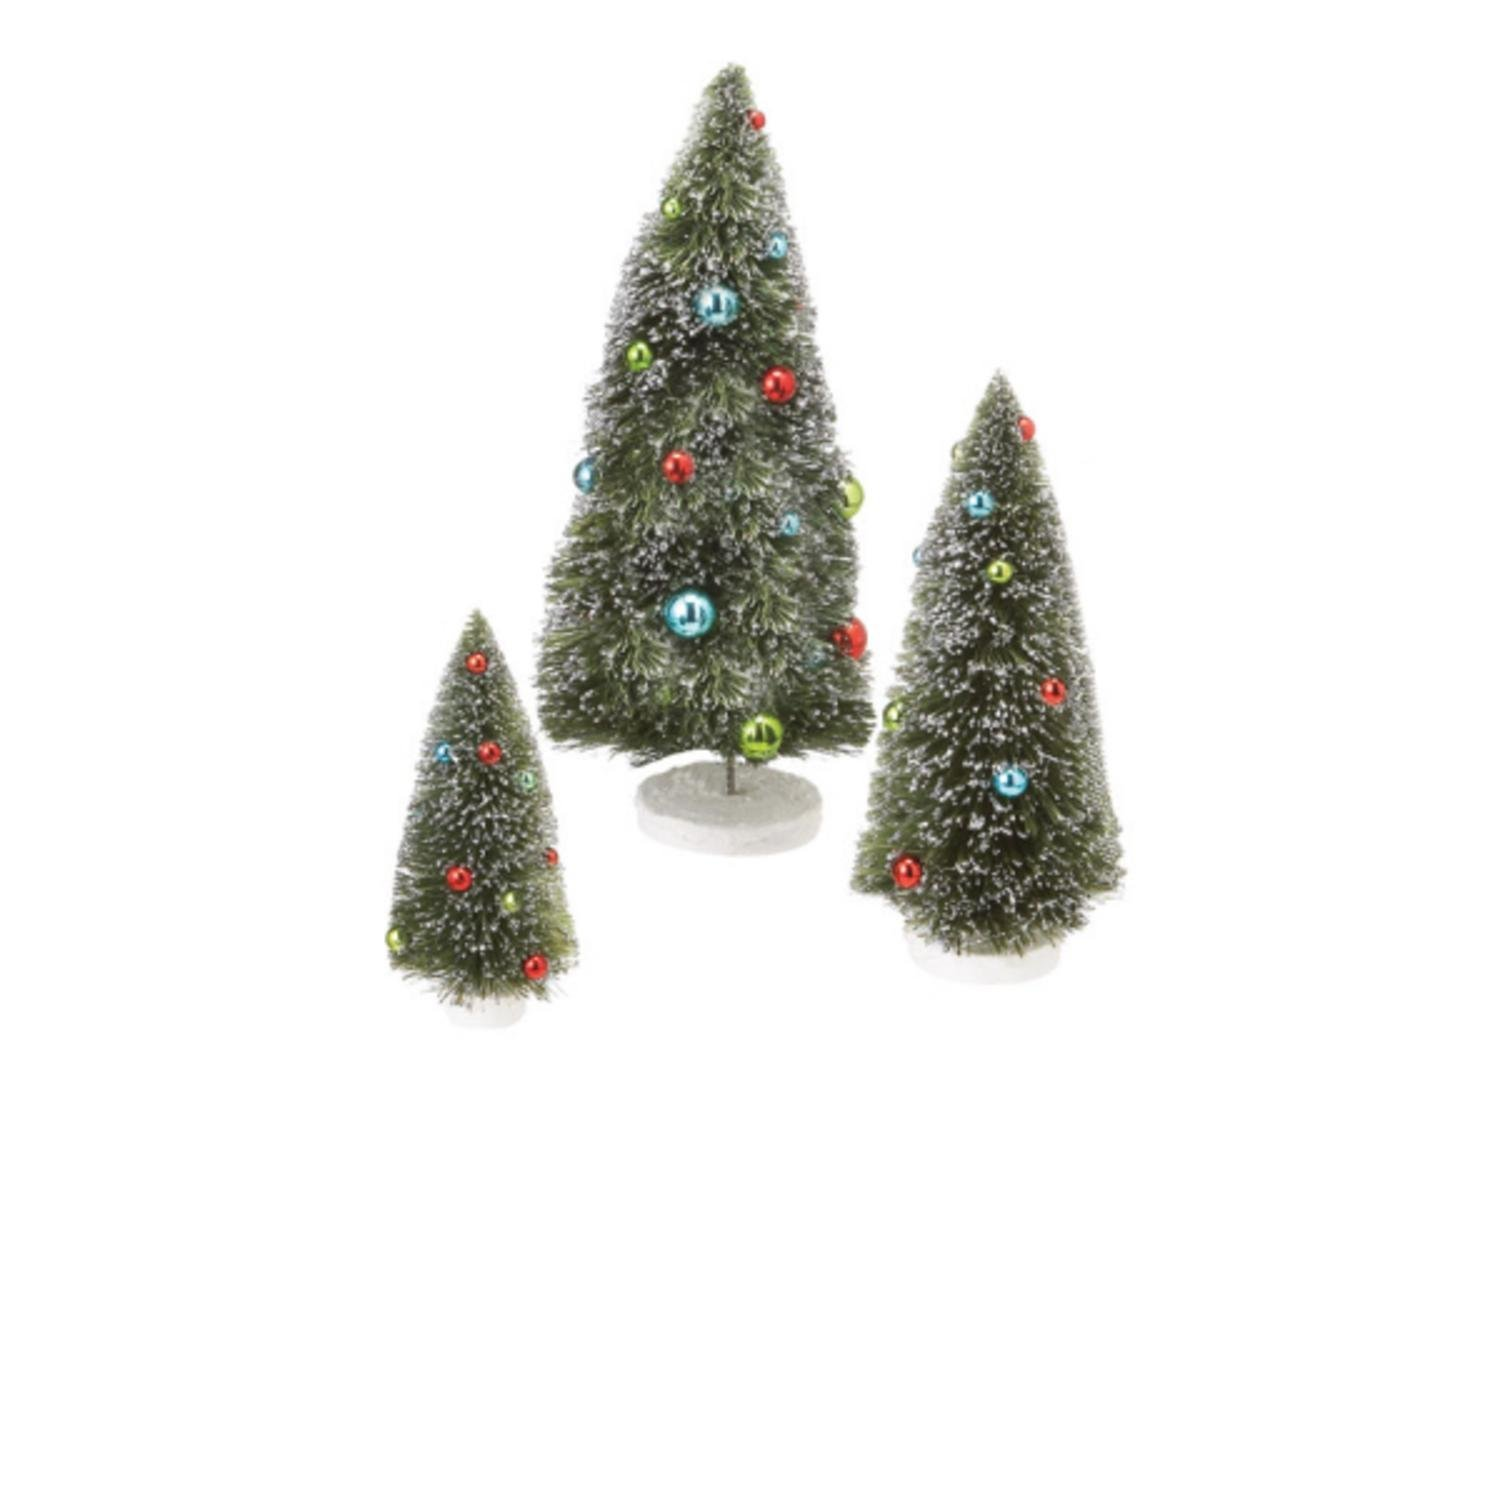 Set of 3 Decorated Glitter-Frosted Table Top Christmas Trees